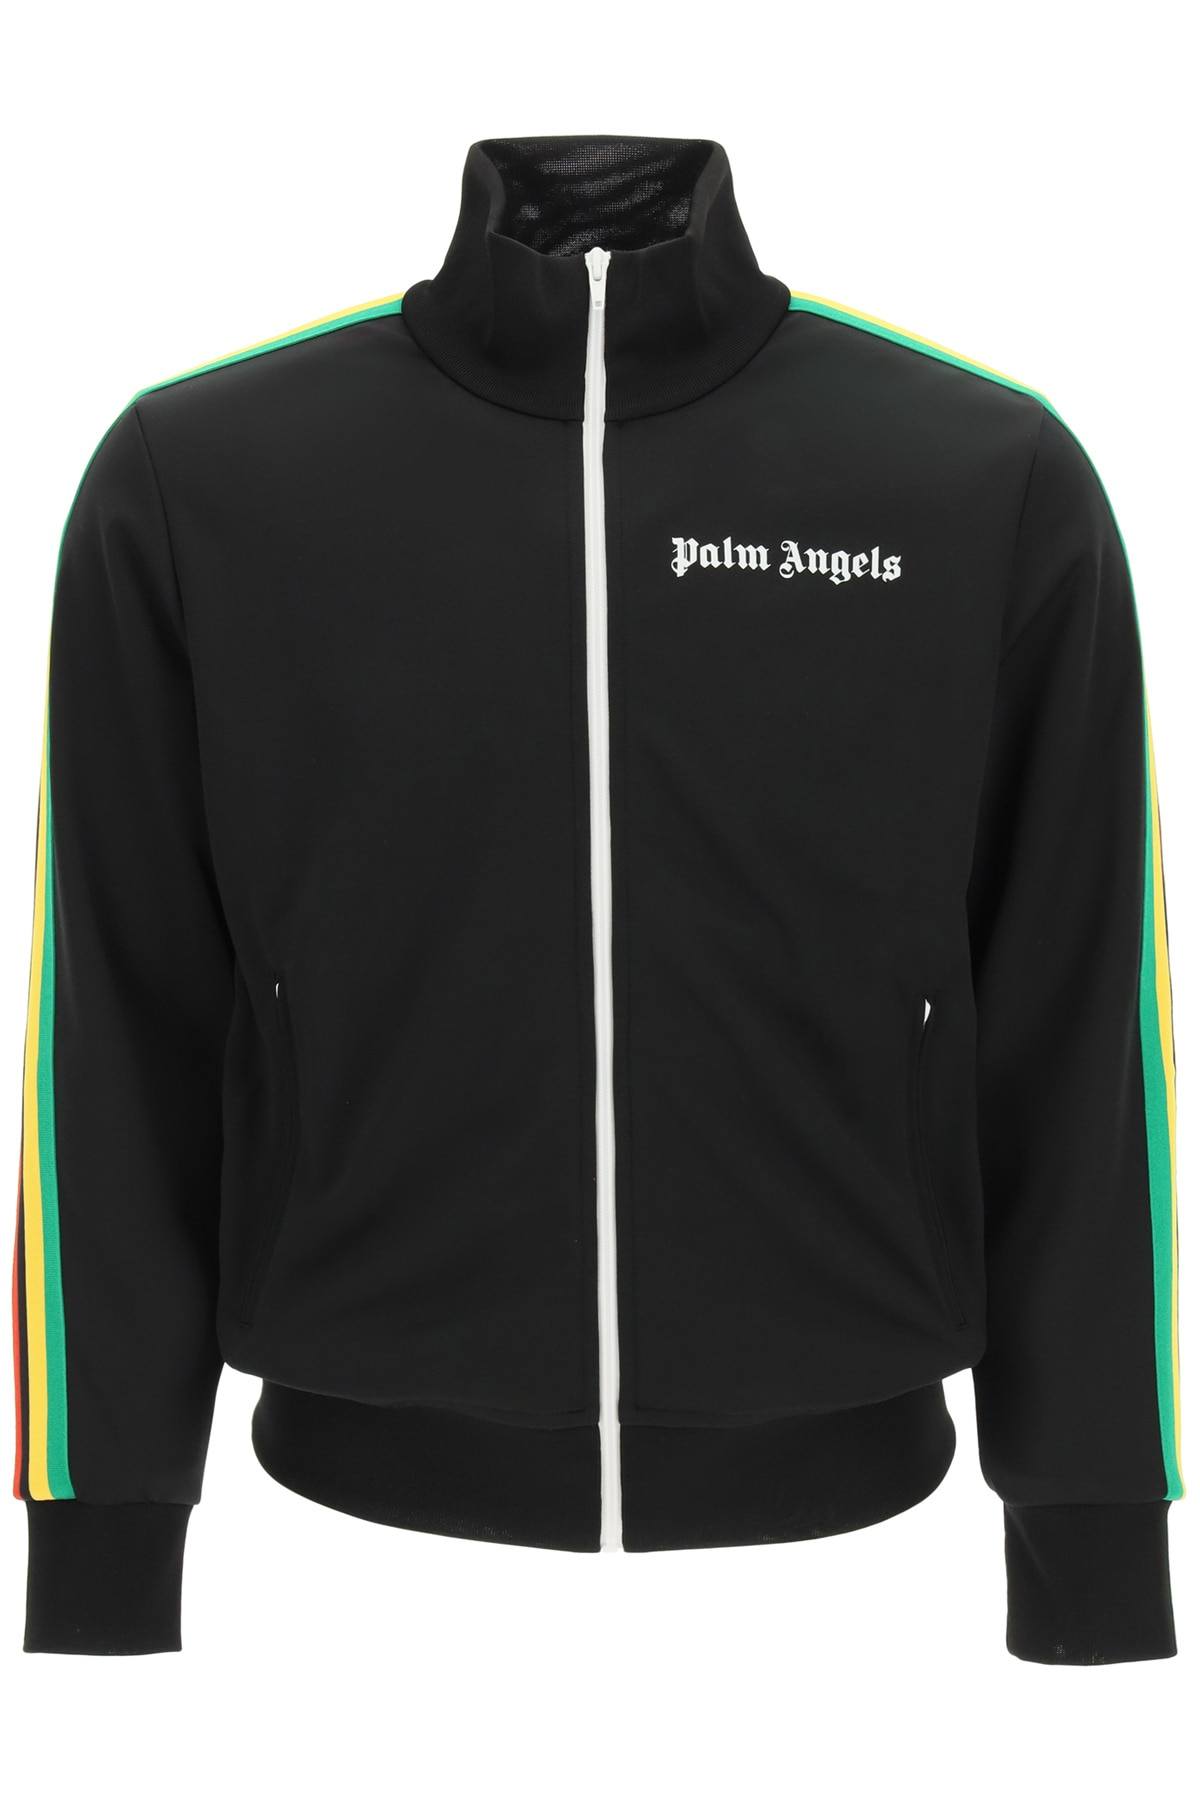 PALM ANGELS ZIP-UP SWEATSHIRT WITH BANDS S Black Technical